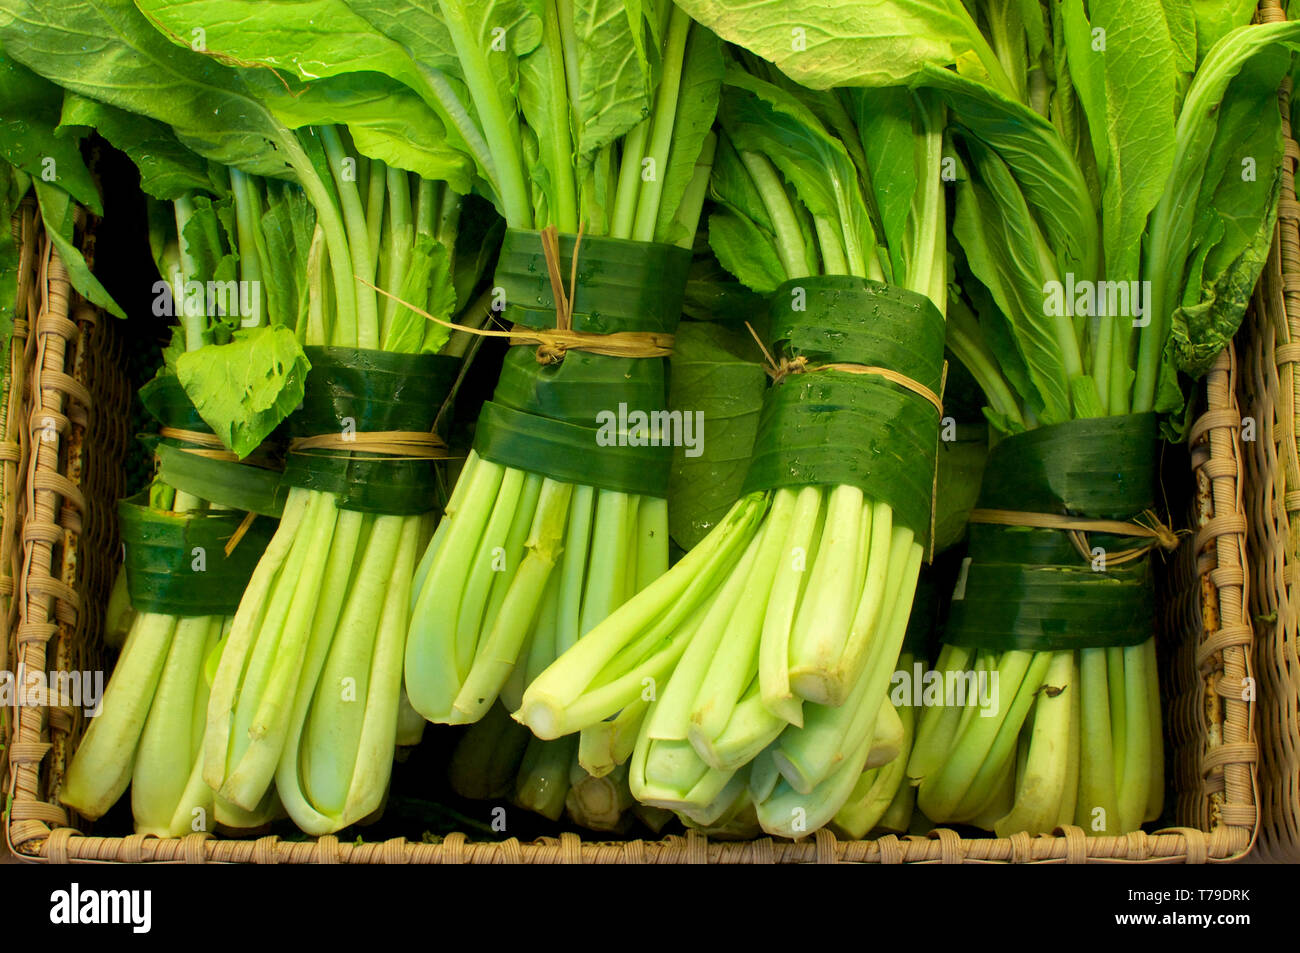 Close up picture of some celery (vegetable) wrapped and bundled in banana leaves. This is an excellent solution to replace plastic packaging and reduc - Stock Image